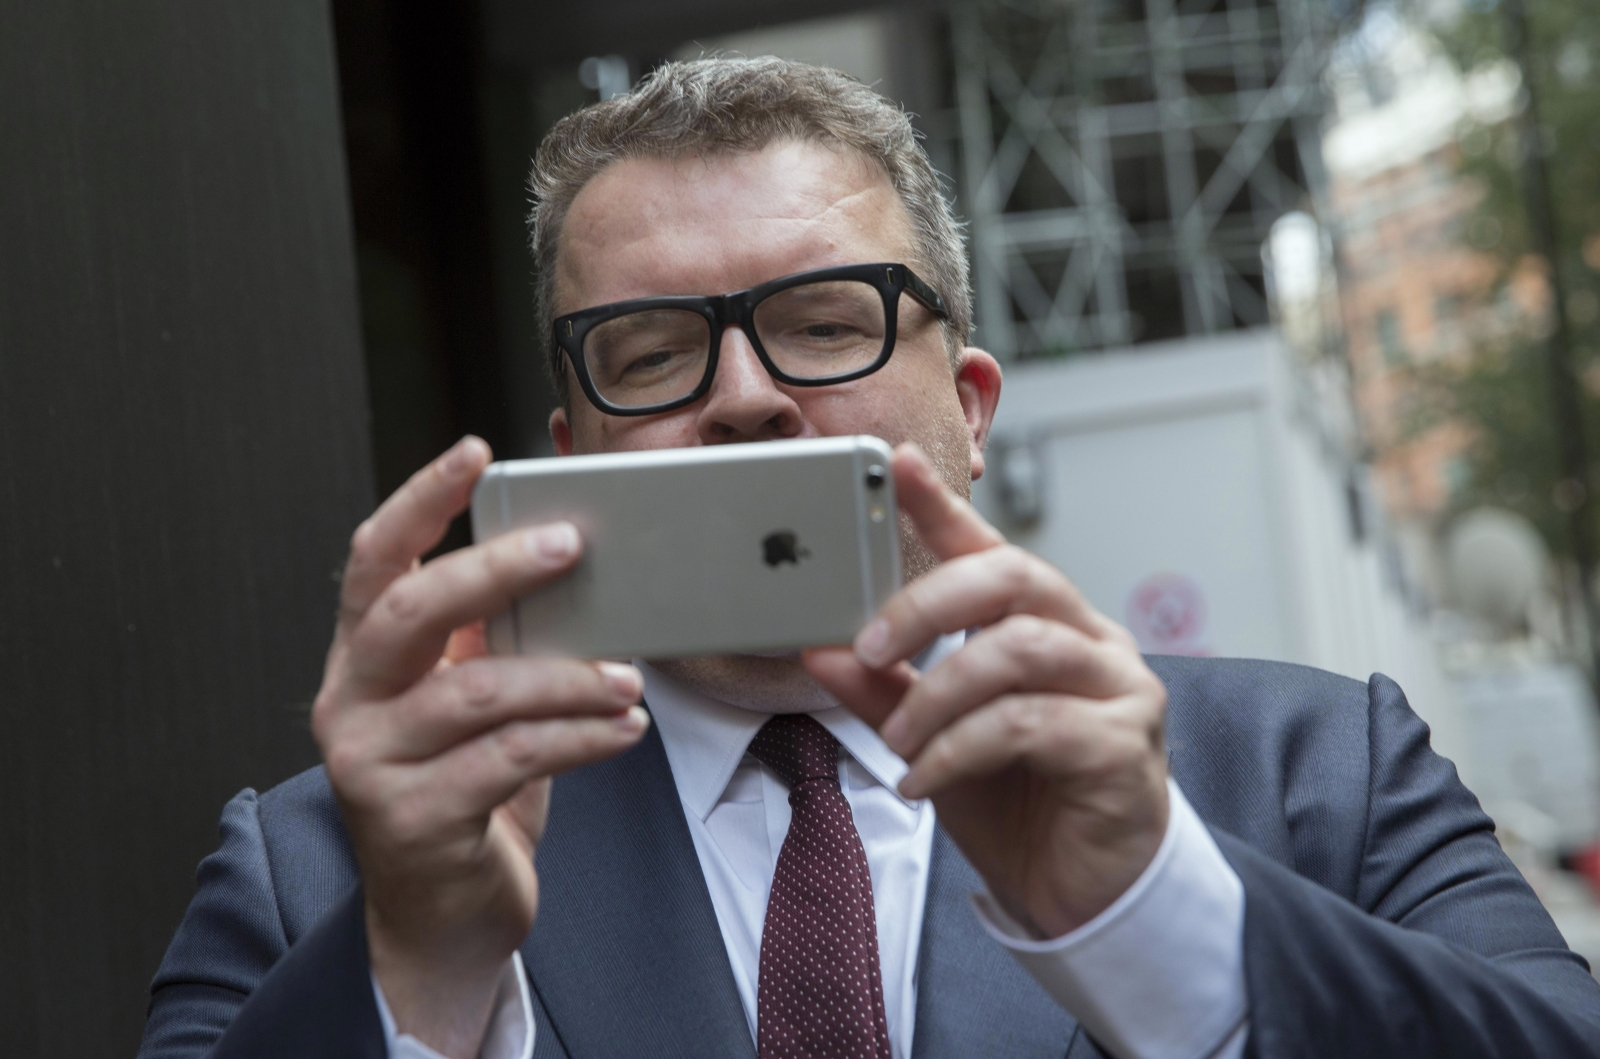 Tom Watson and his iPhone